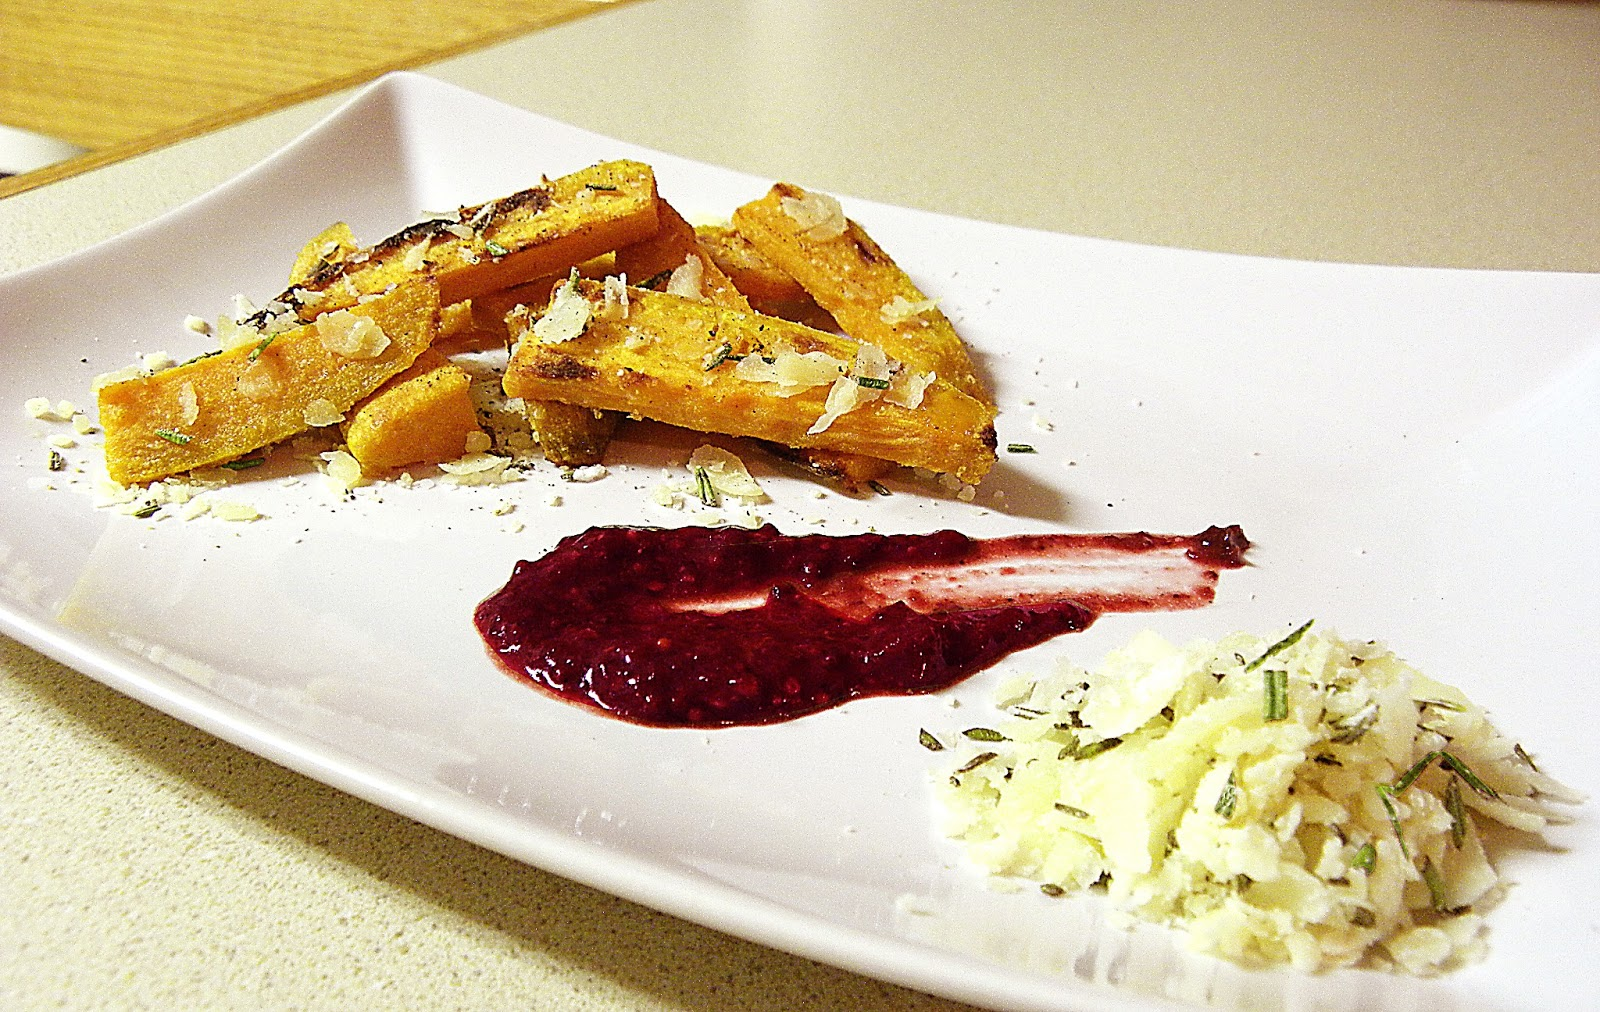 ... Tea Spoons and Pickle Forks: Parmesan and Rosemary Sweet Potato Fries